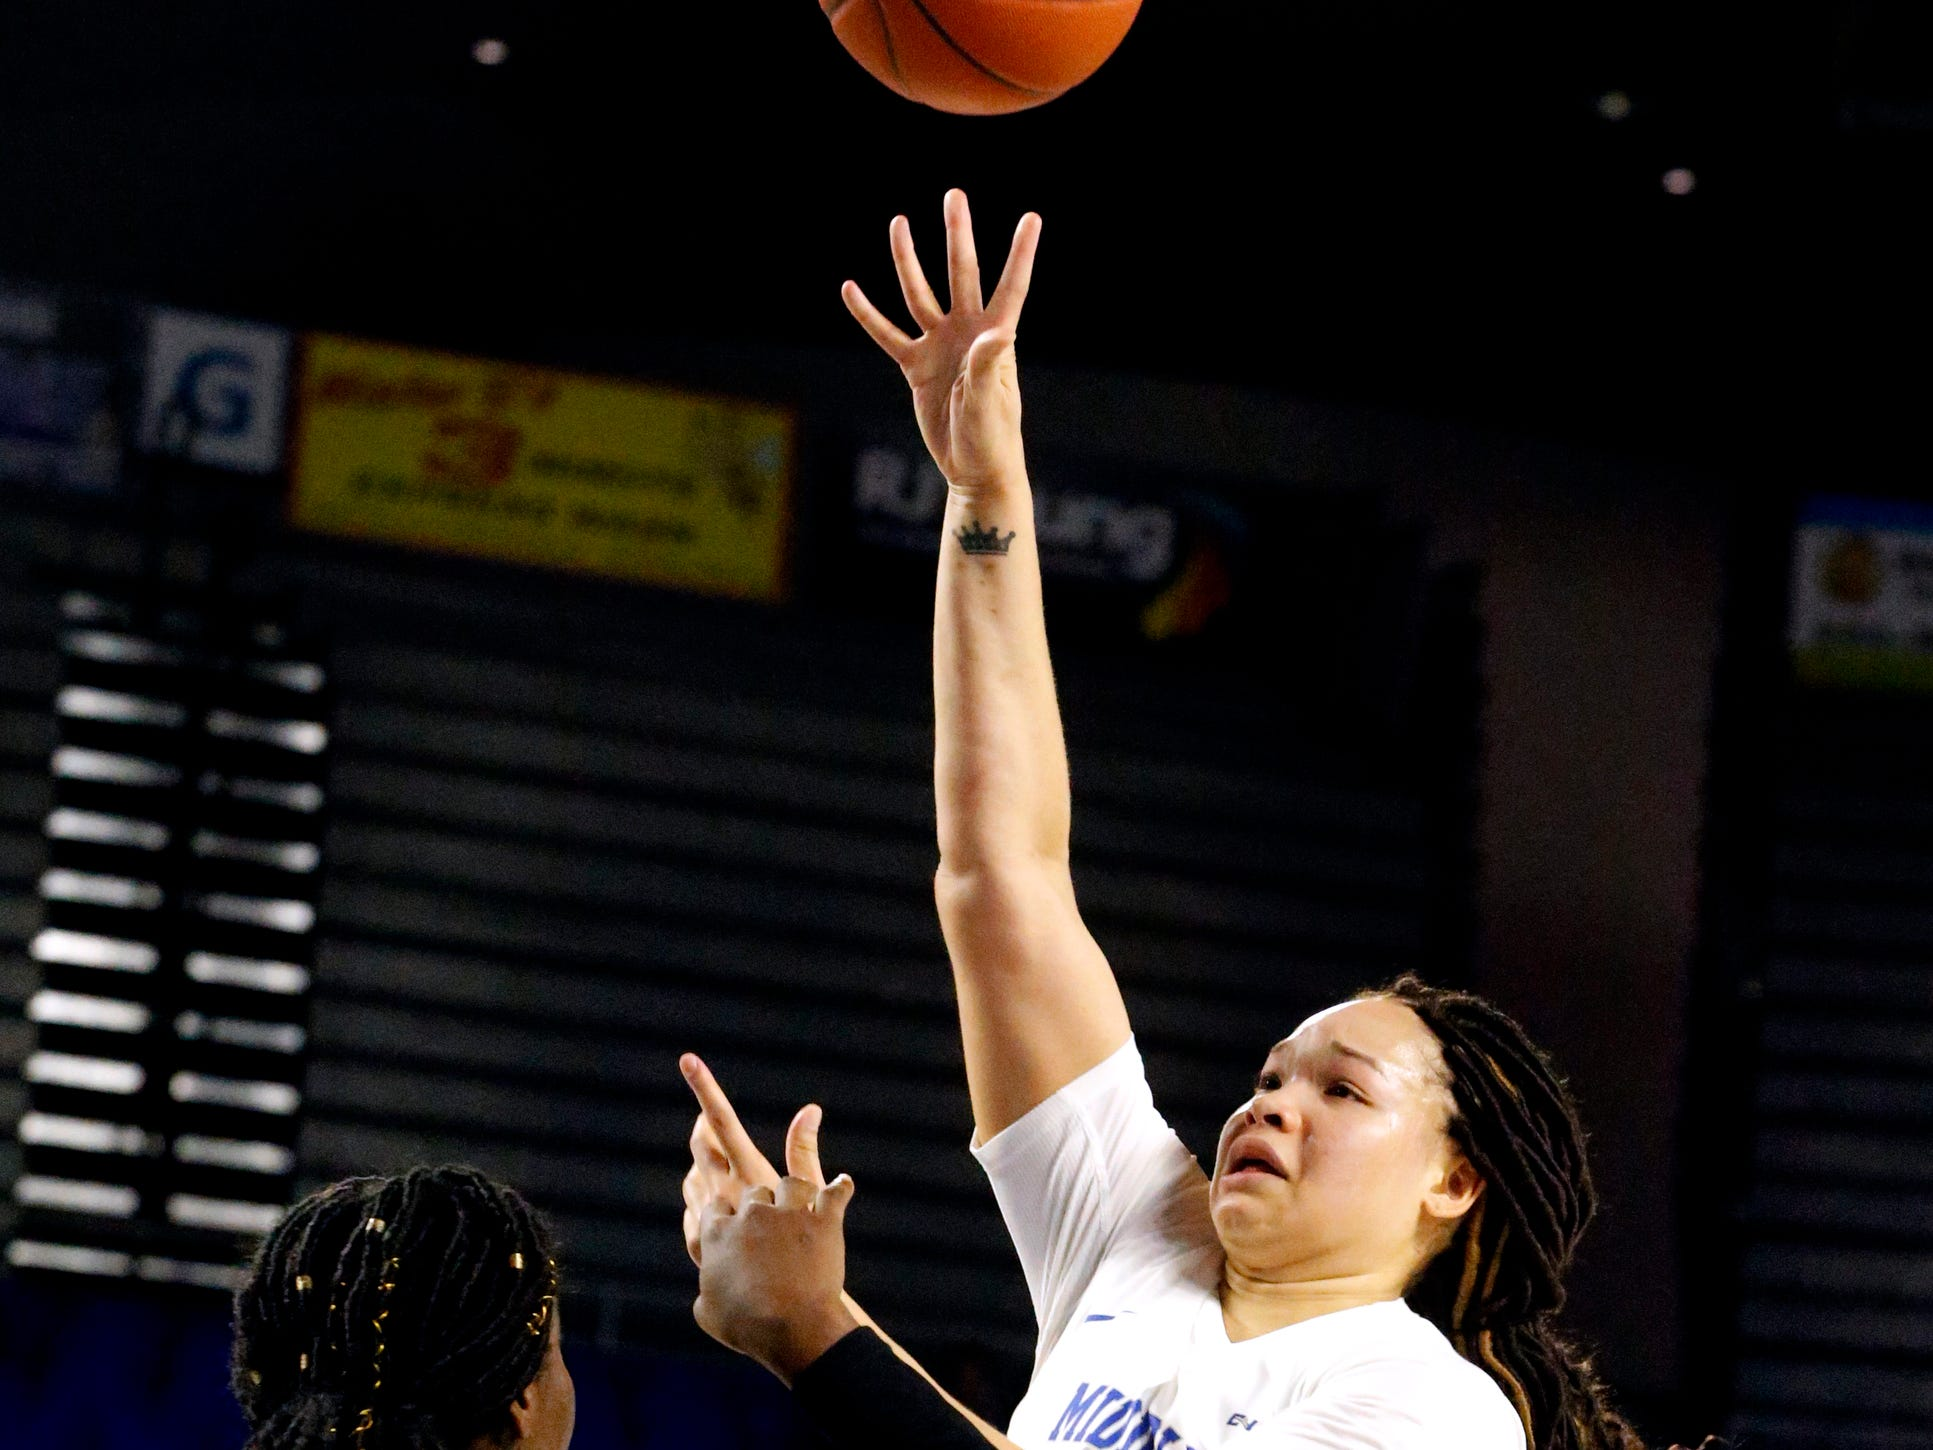 MTSU's forward Alex Johnson (00) shoots the ball as North Texas' forward/center Anisha George (42) defends her on Saturday Jan. 26, 2019.